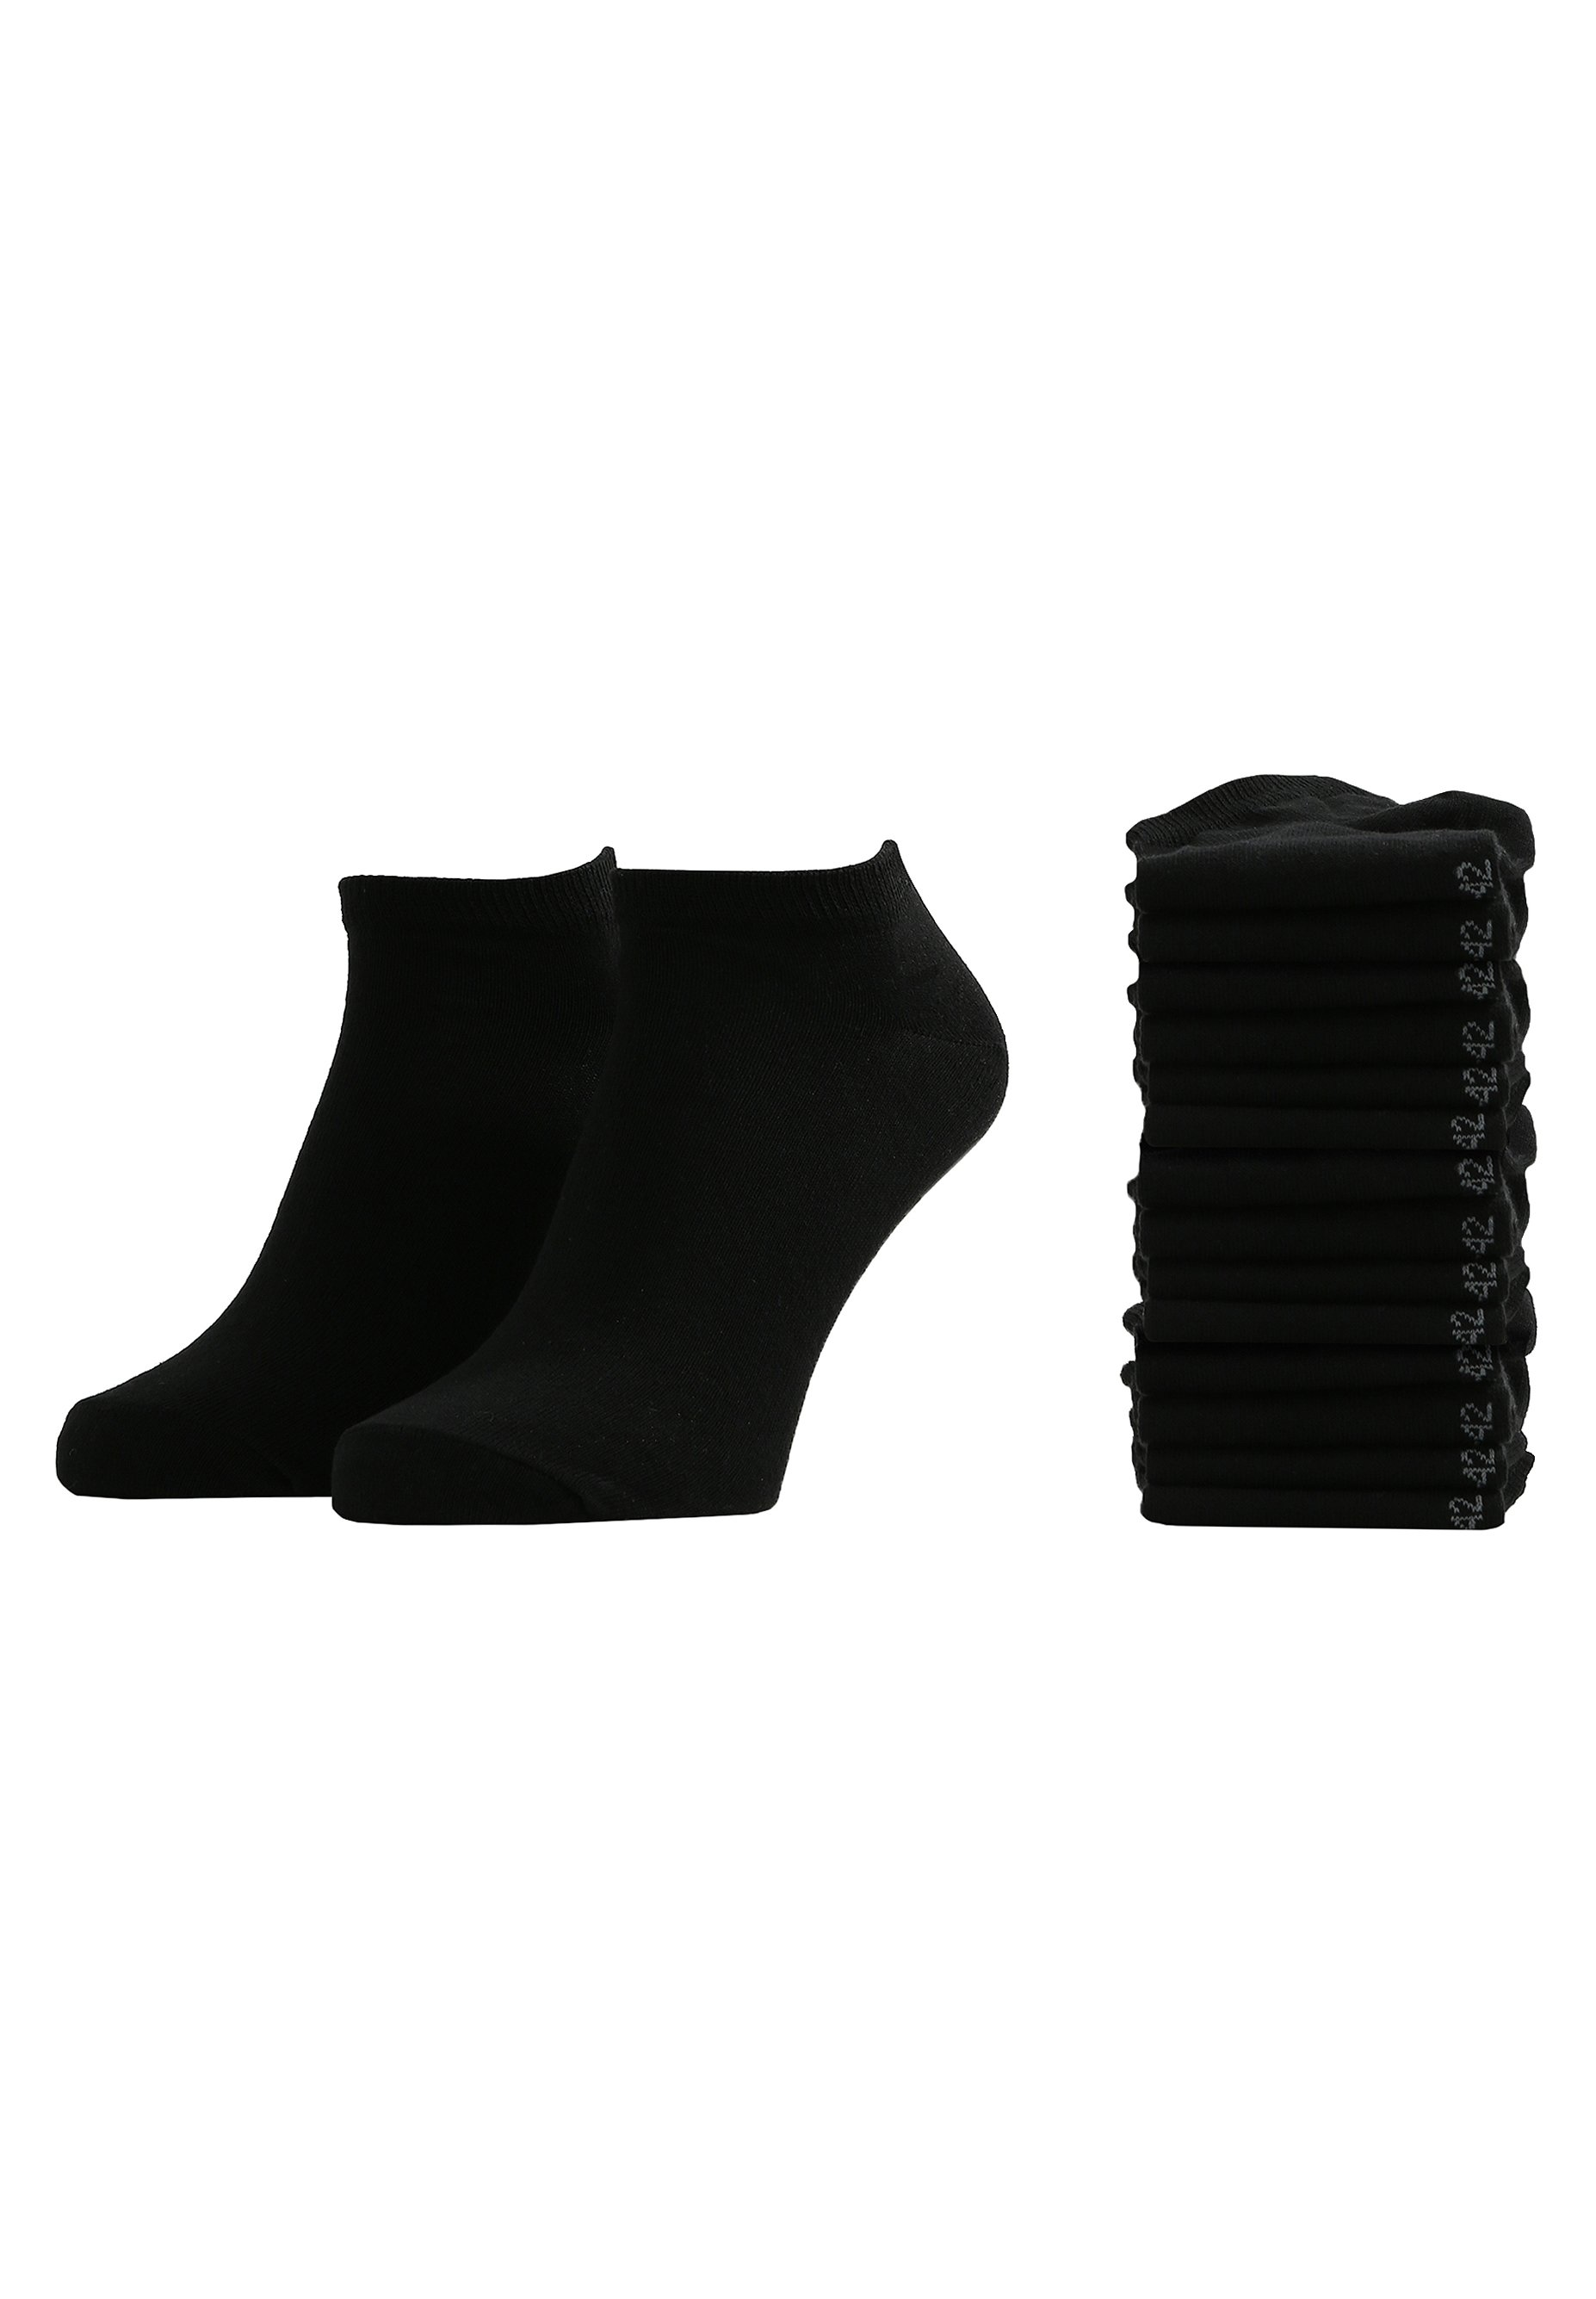 Hombre 15er Pack - Calcetines